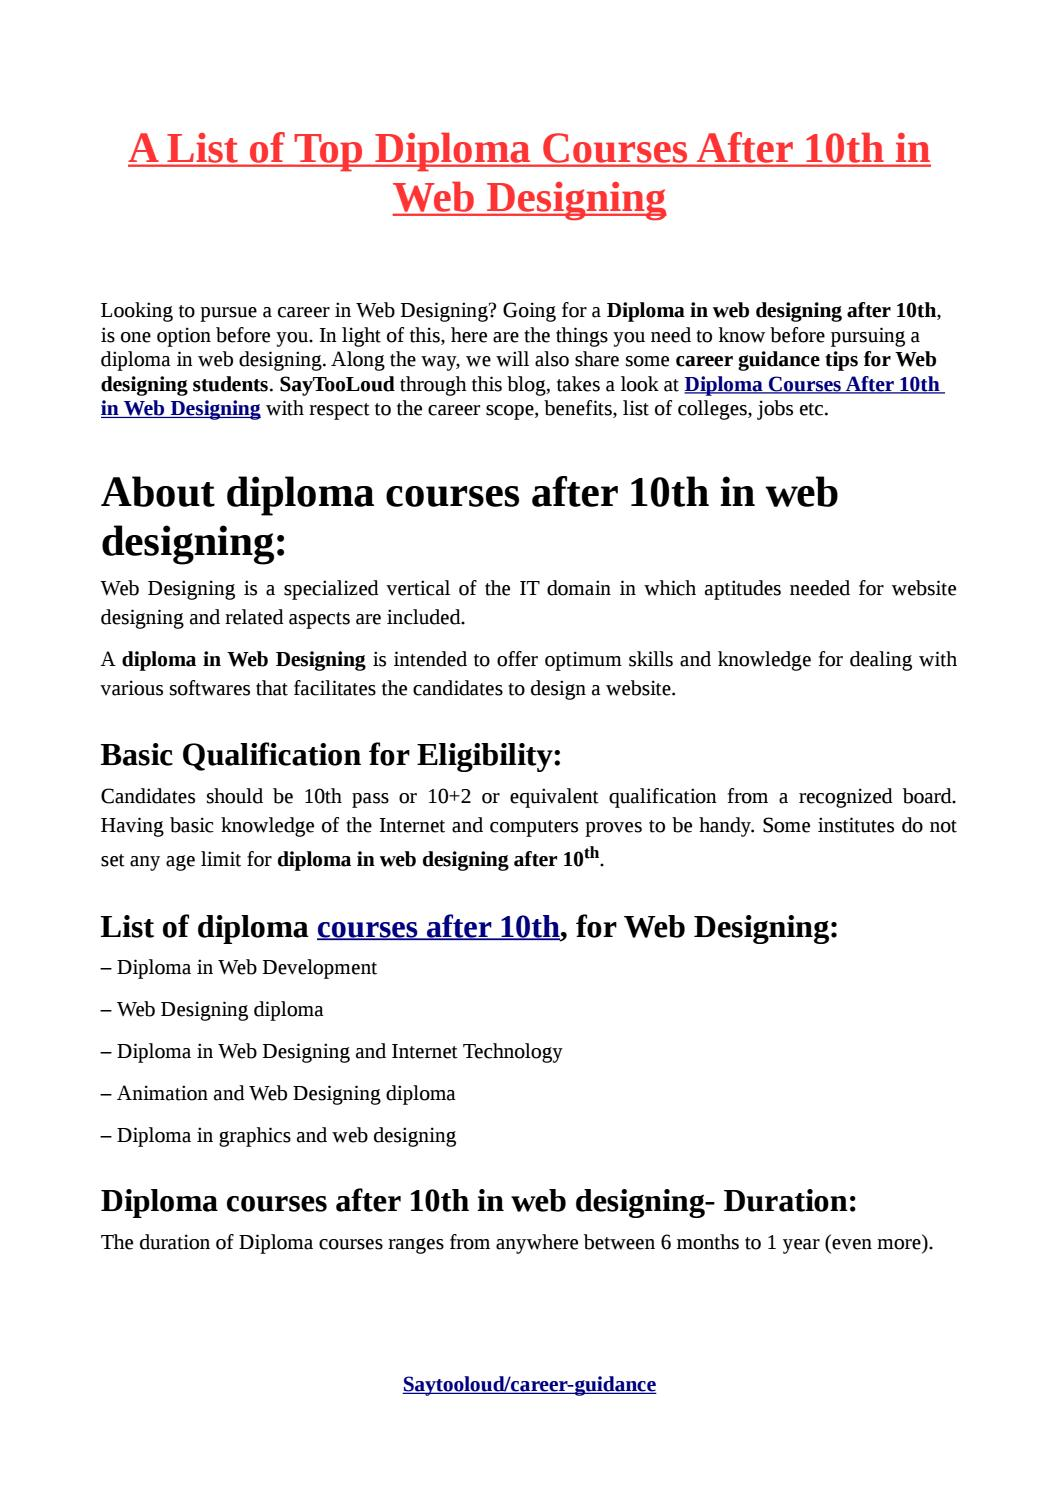 A List Of Top Diploma Courses After 10th In Web Designing By Ashwini Sharma Issuu